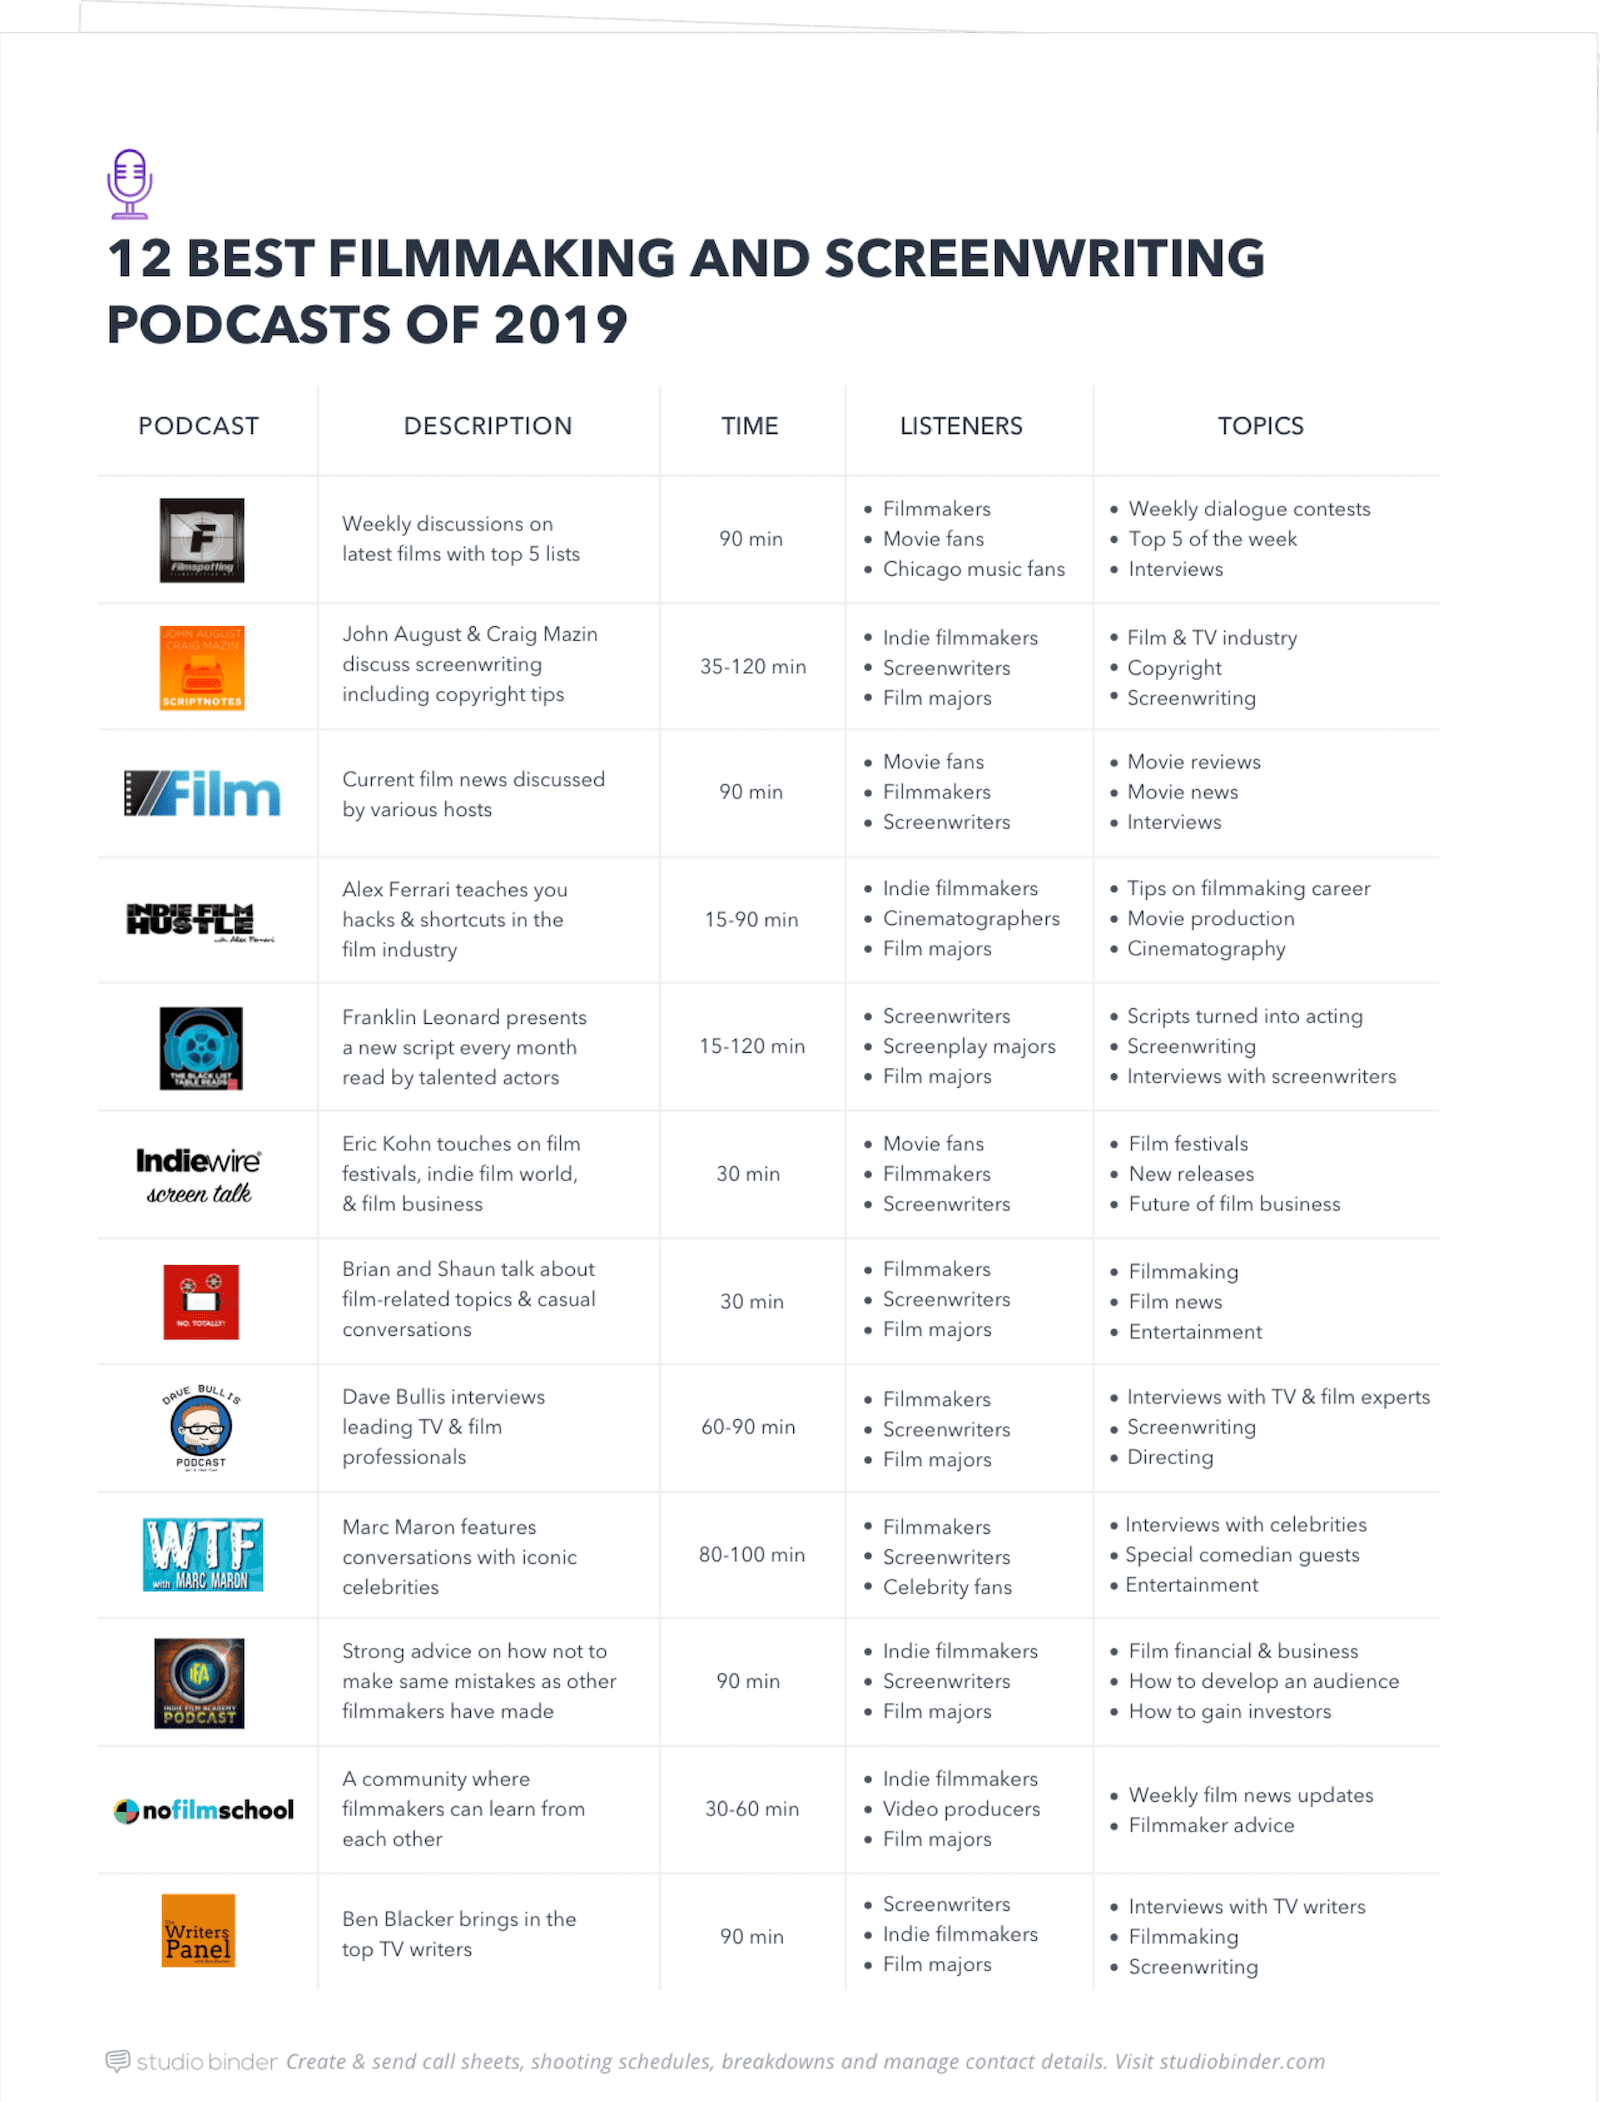 The 12 Best Filmmaking and Screenwriting Podcasts of 2019